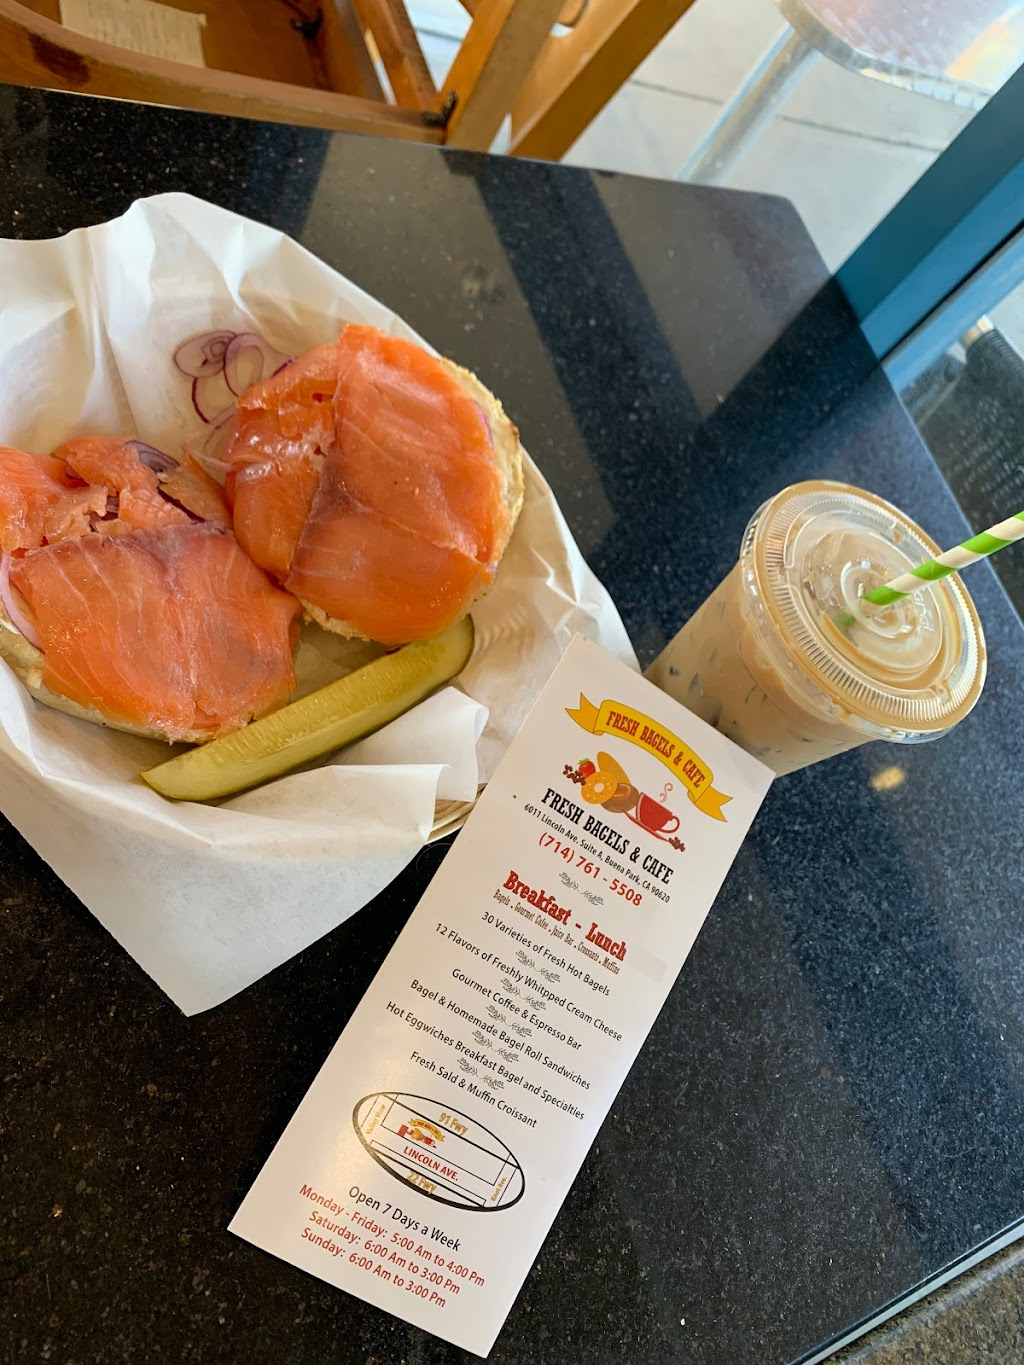 Fresh Bagels & Cafe - bakery  | Photo 7 of 10 | Address: 6011 Lincoln Ave, Buena Park, CA 90620, USA | Phone: (714) 761-5508